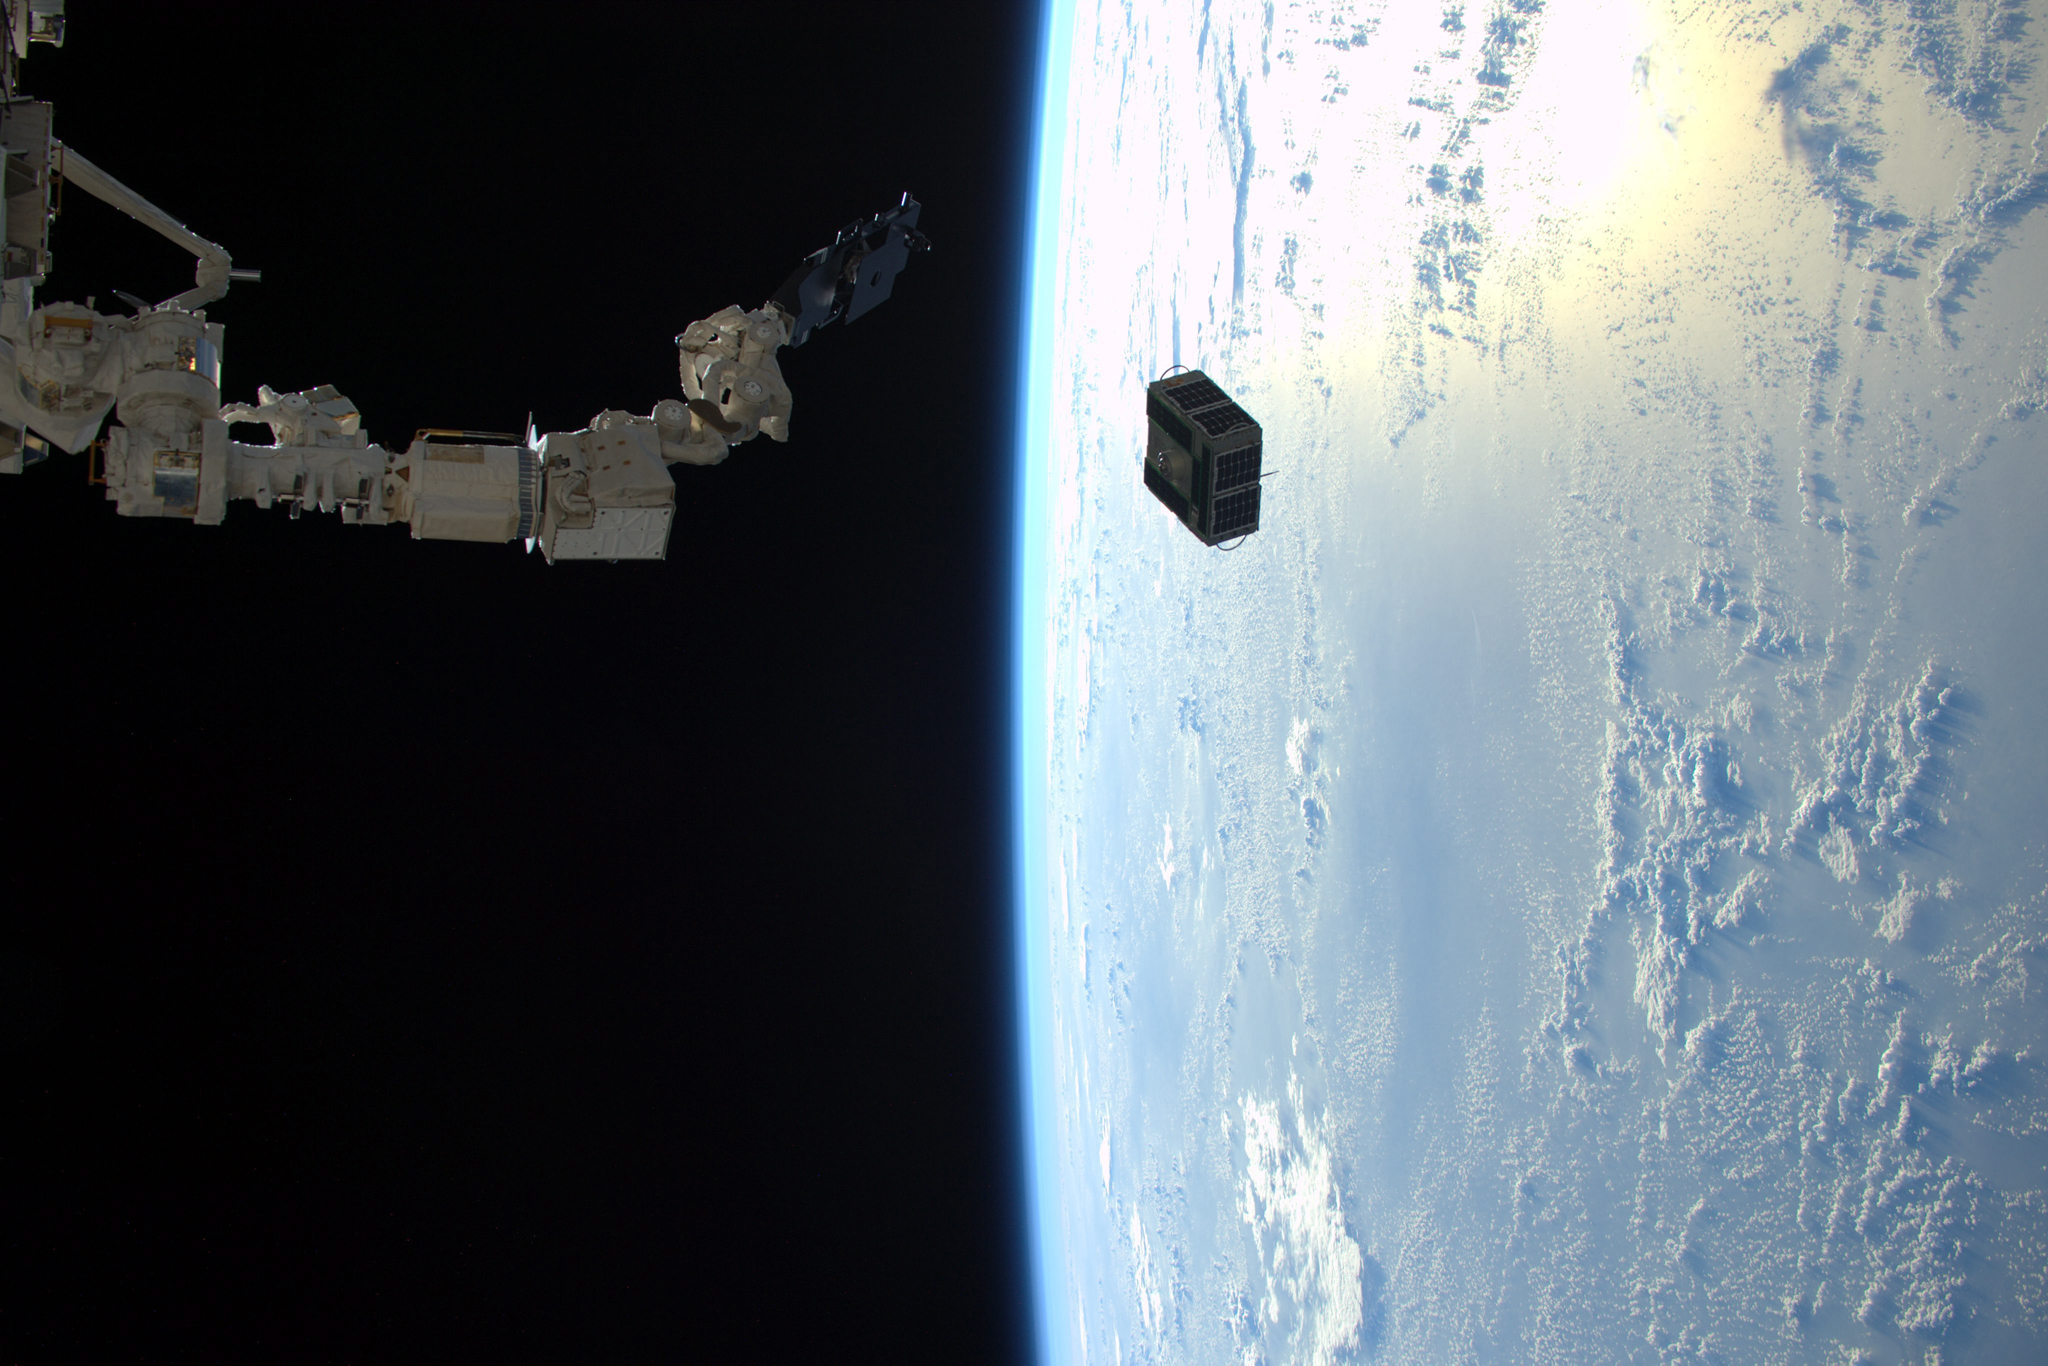 NASA successfully deploys two combined satellites from Texas universities...epa05140040 A handout image dated 29 January 2016 and made available by ESA/NASA on 02 February 2016, showing an image made by Expedition 46 flight engineer Tim Peake of ESA aboard the International Space Station, as the robotic arm in Japan's Kibo laboratory successfully deployed two combined satellites from Texas universities. The pair of satellites -- AggieSat4 built by Texas A&M University students, and BEVO-2 built by University of Texas students -- together form the Low Earth Orbiting Navigation Experiment for Spacecraft Testing Autonomous Rendezvous and Docking (LONESTAR) investigation.  EPA/TIM PEAKE / ESA / NASA /